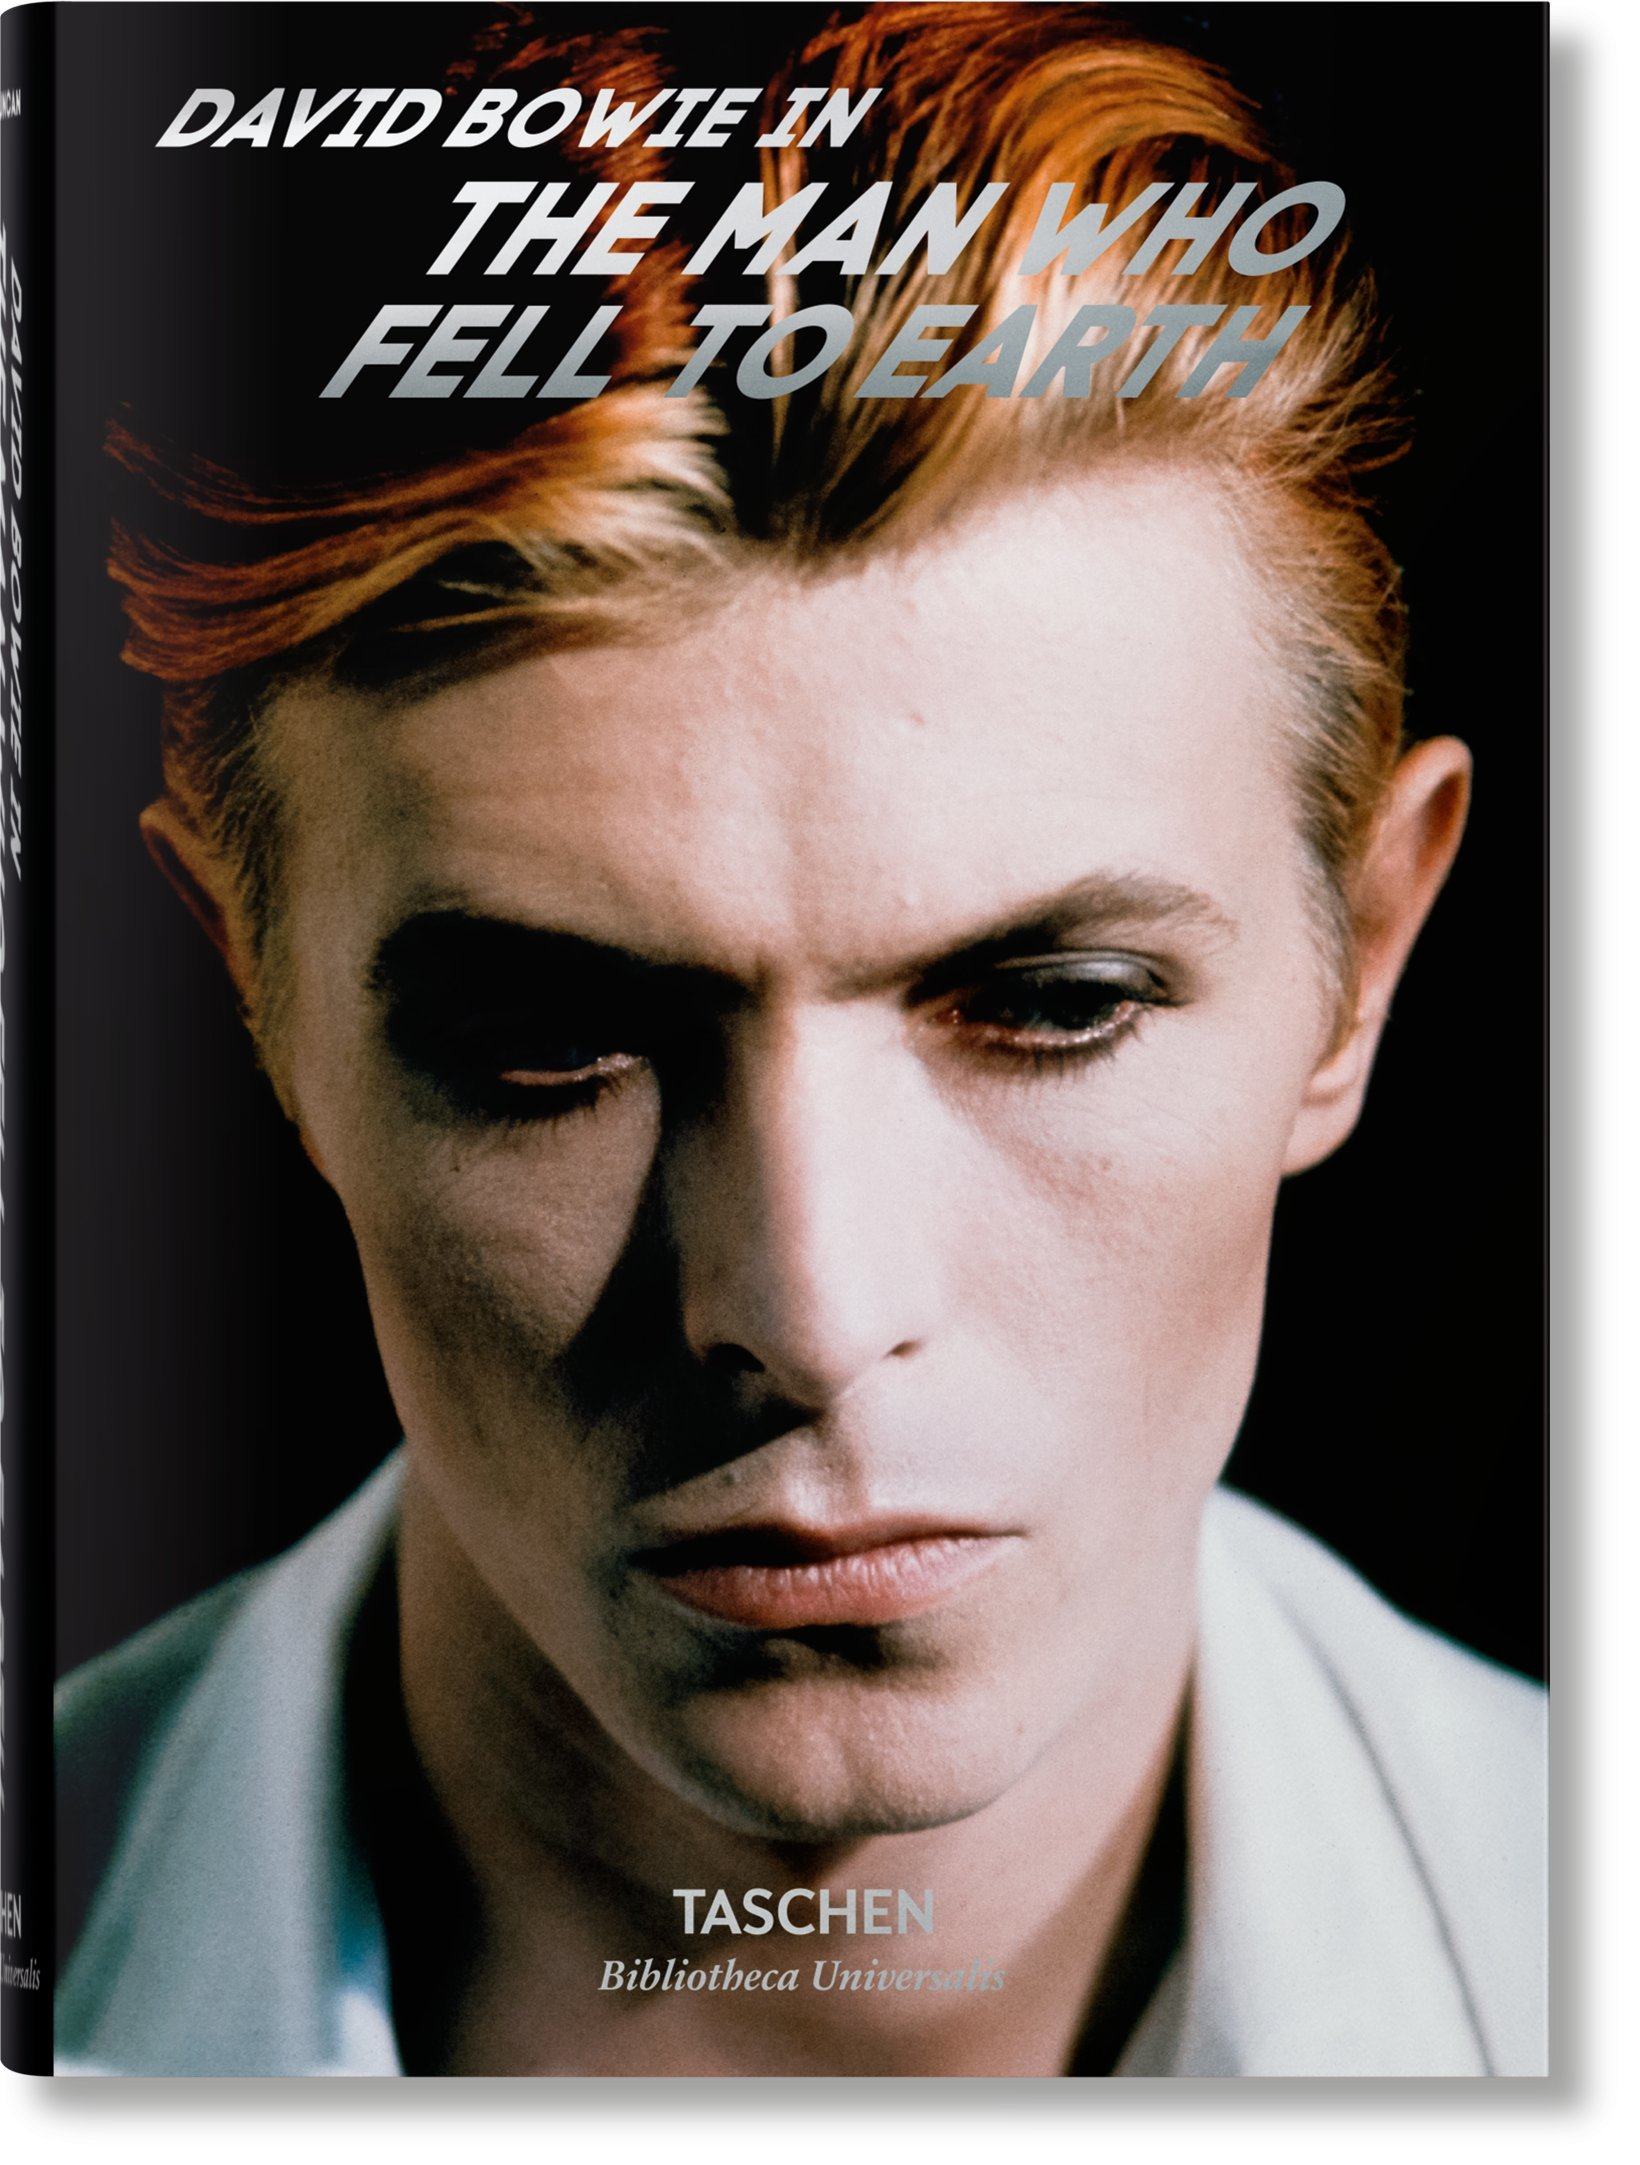 David Bowie in The Man Who Fell to Earth, by Taschen